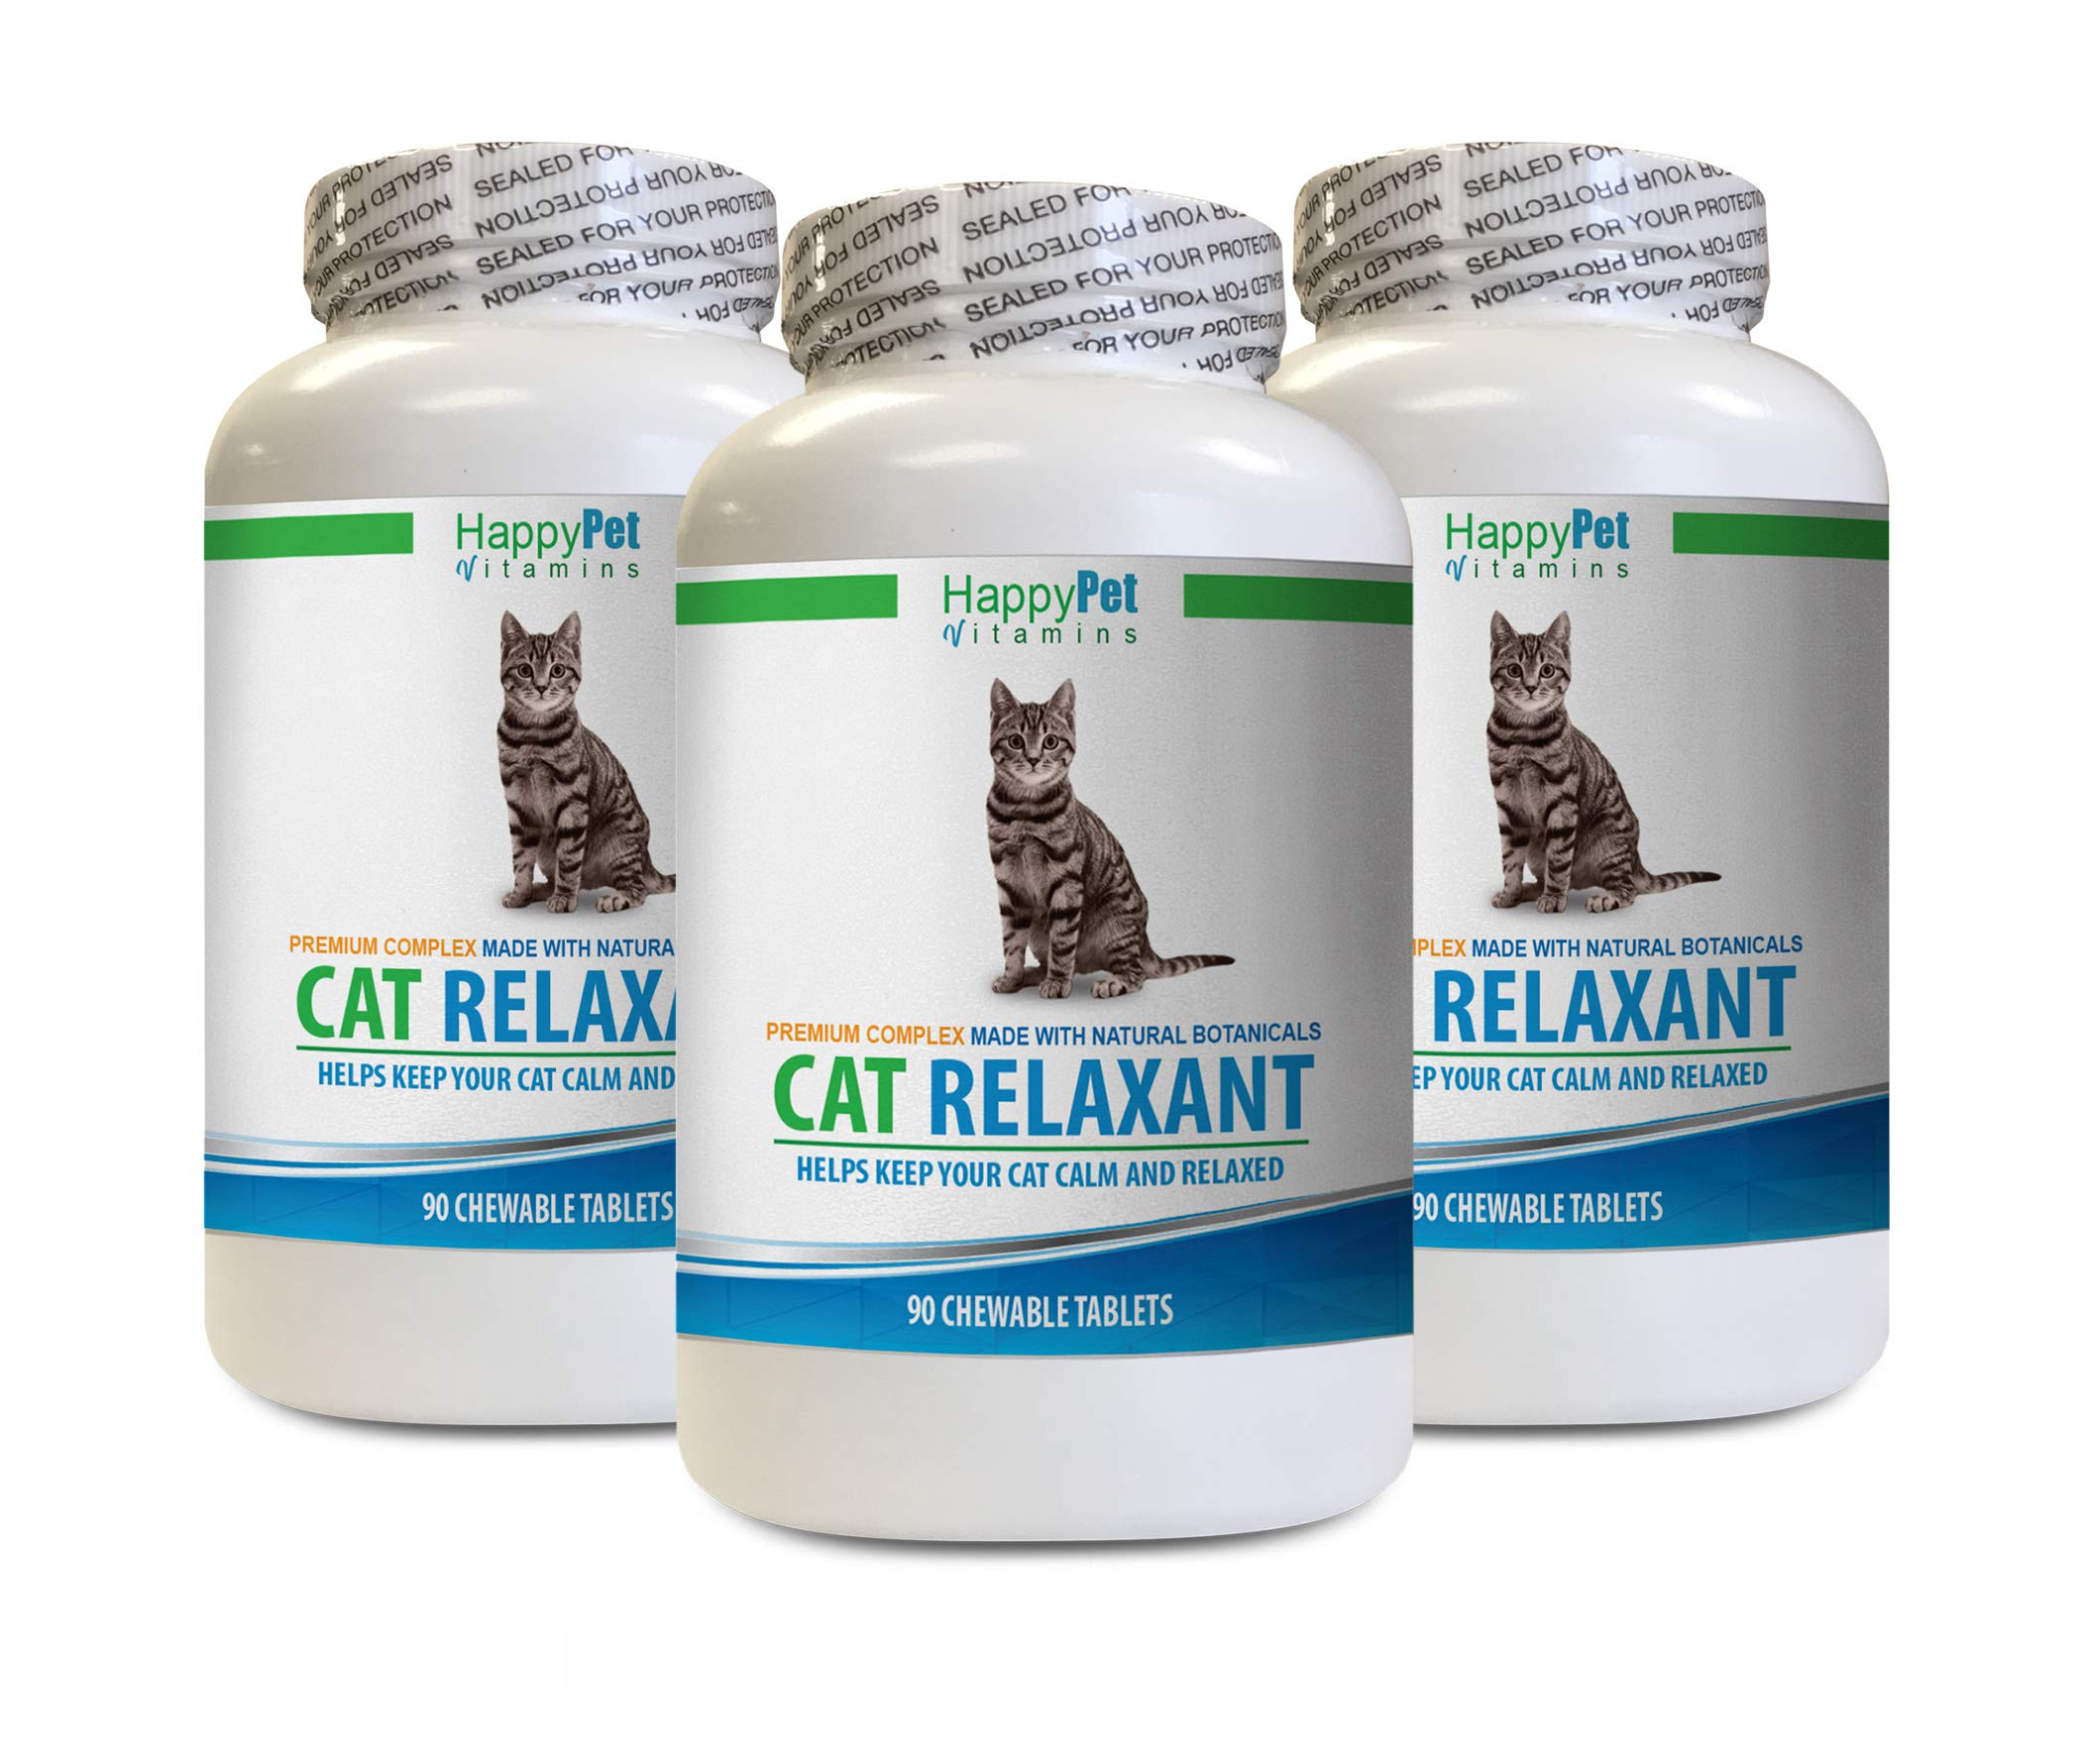 HAPPY PET VITAMINS LLC cat Calm Refill - CAT Relaxant - Anxiety and Stress Relief - Natural Calmer - Premium - cat Stress Stopper - 3 Bottles (270 Chewable Tabs) by HAPPY PET VITAMINS LLC